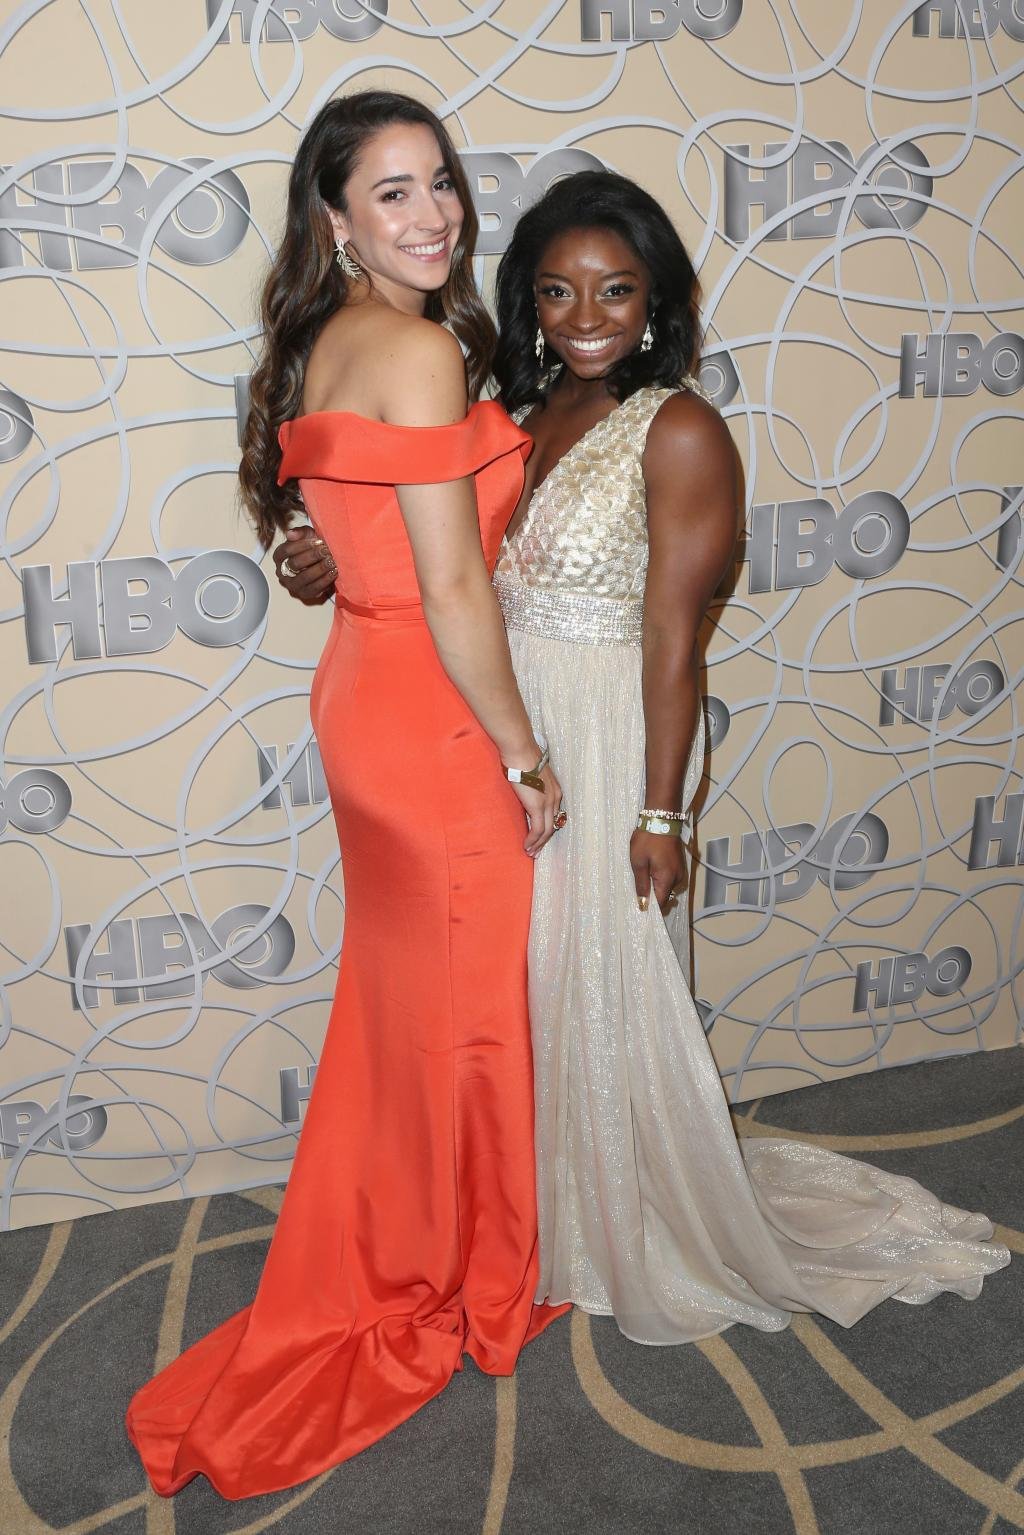 Simone Biles and Aly Raisman Pose for the        Sports Illustrated      '  Swimsuit Issue 2017